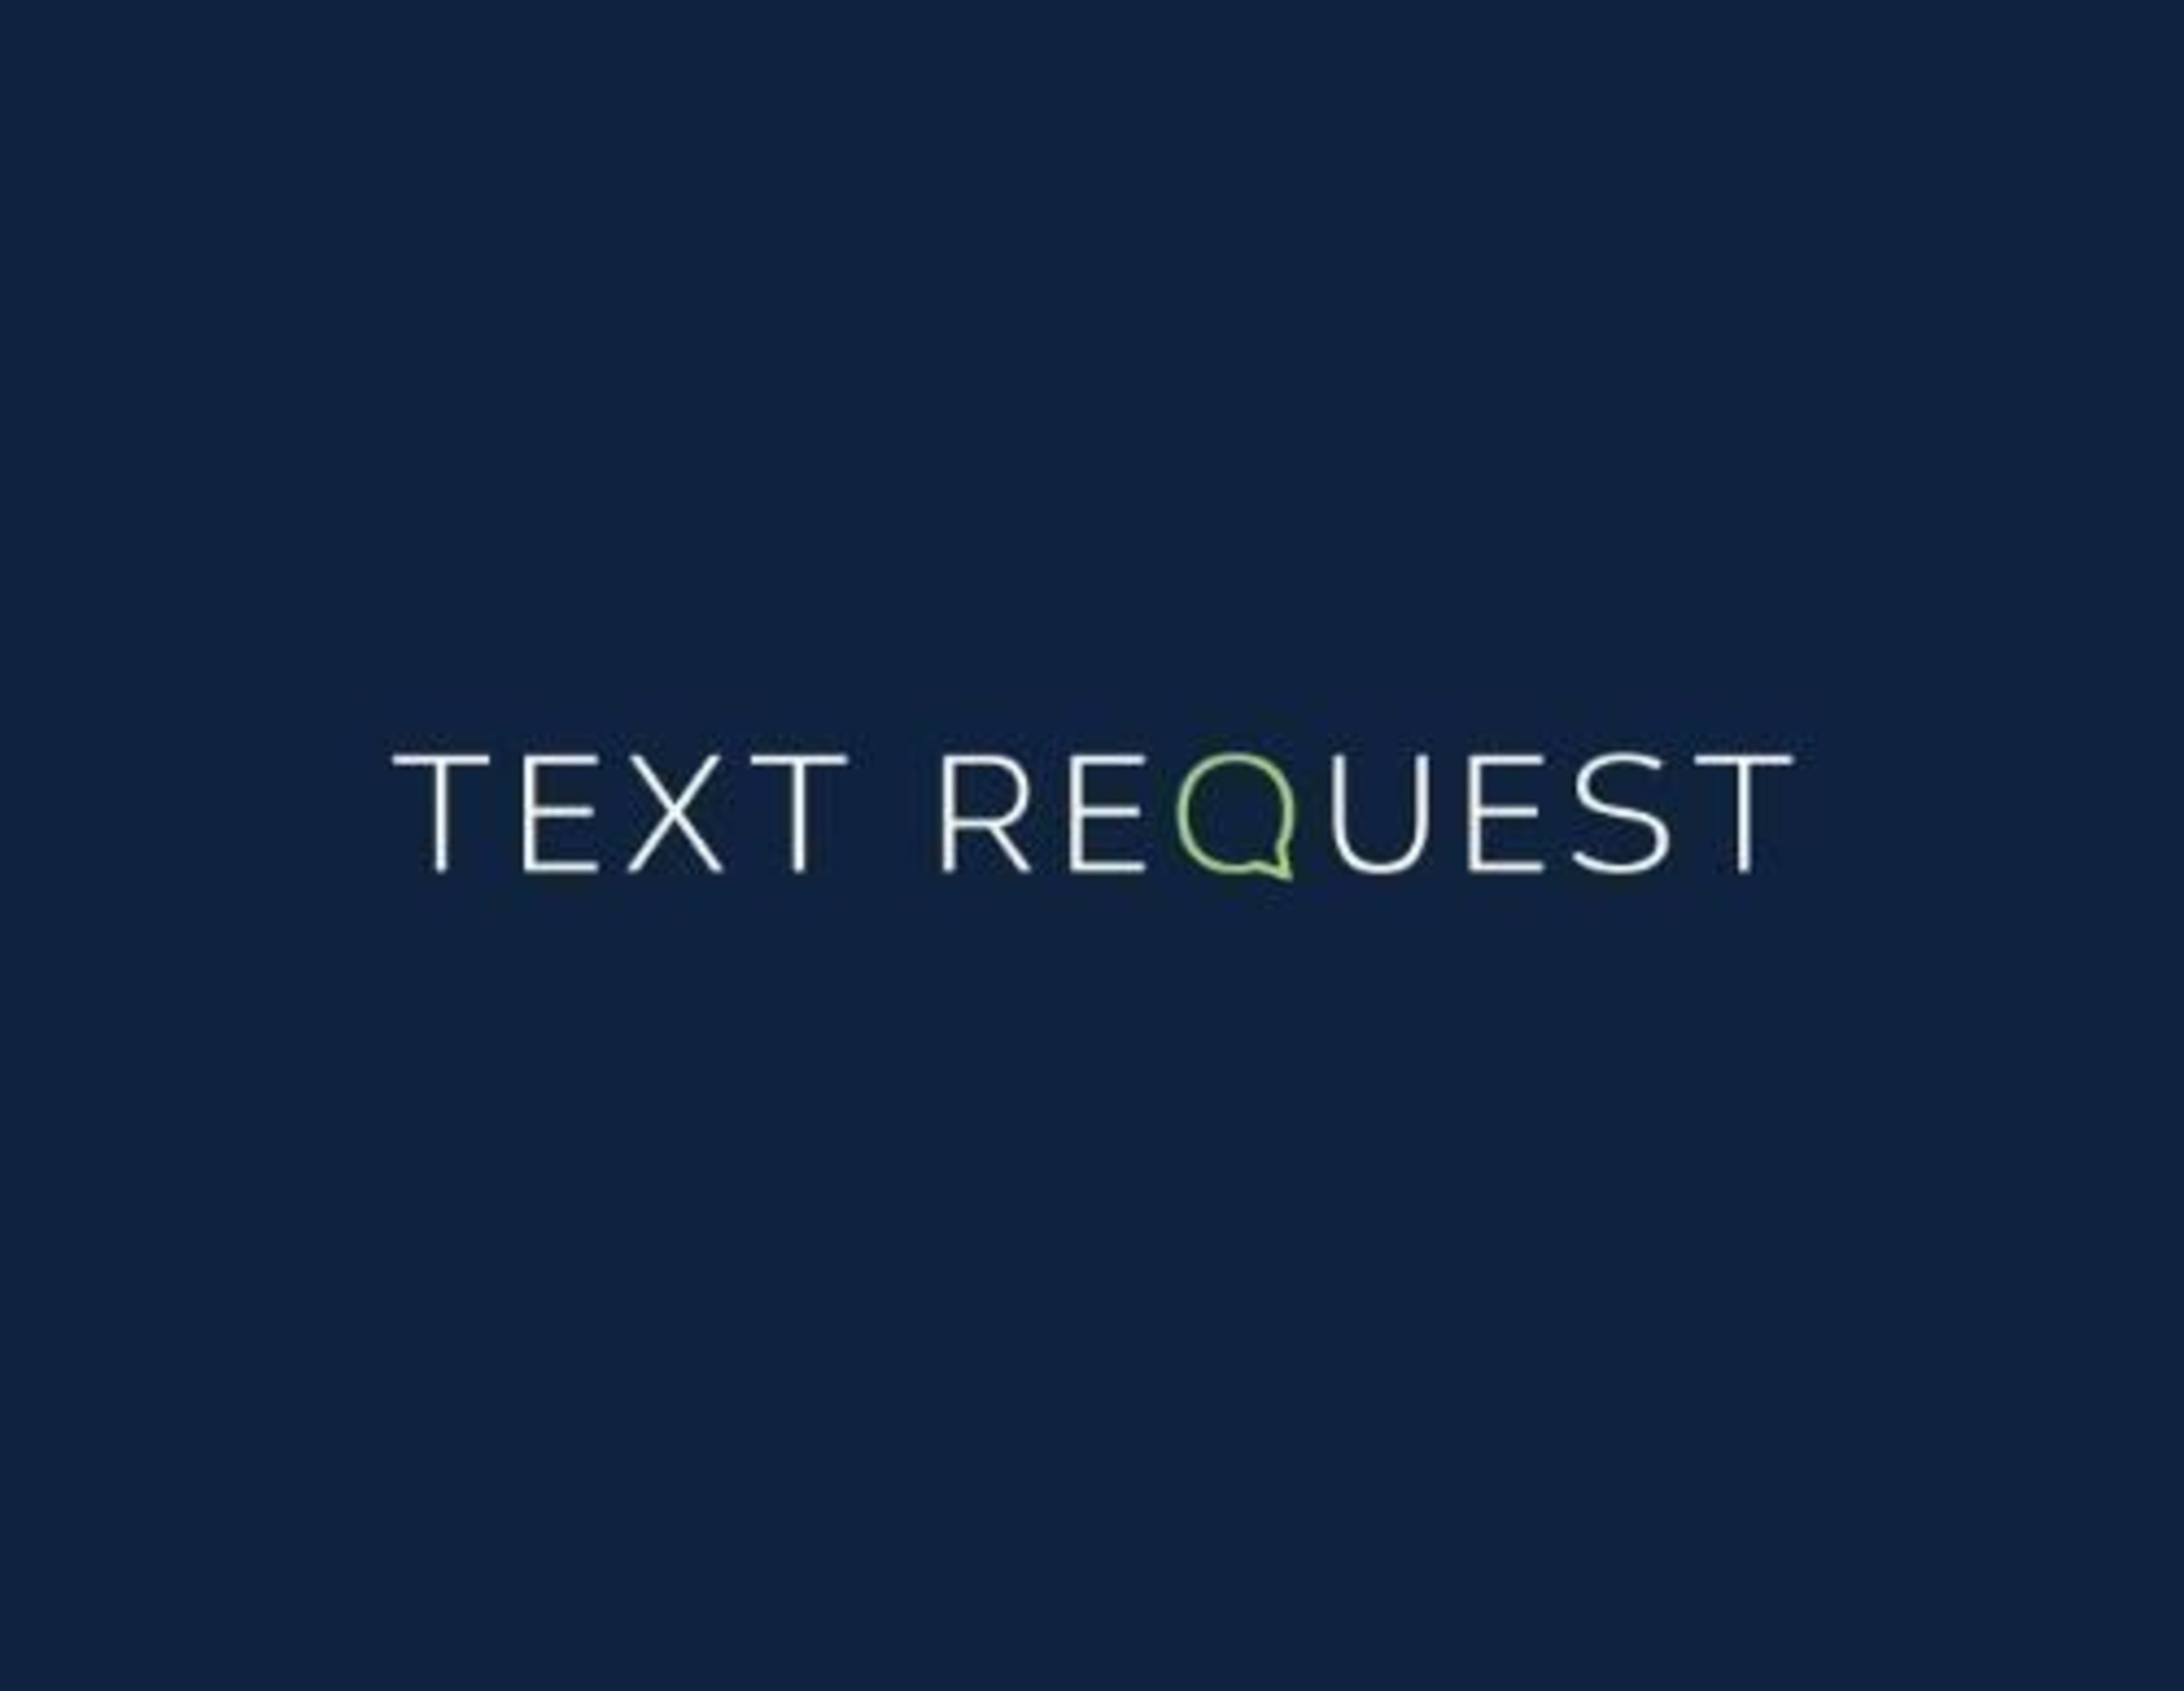 Text Request Provides Security Solution for Schools, Cities, and Venues